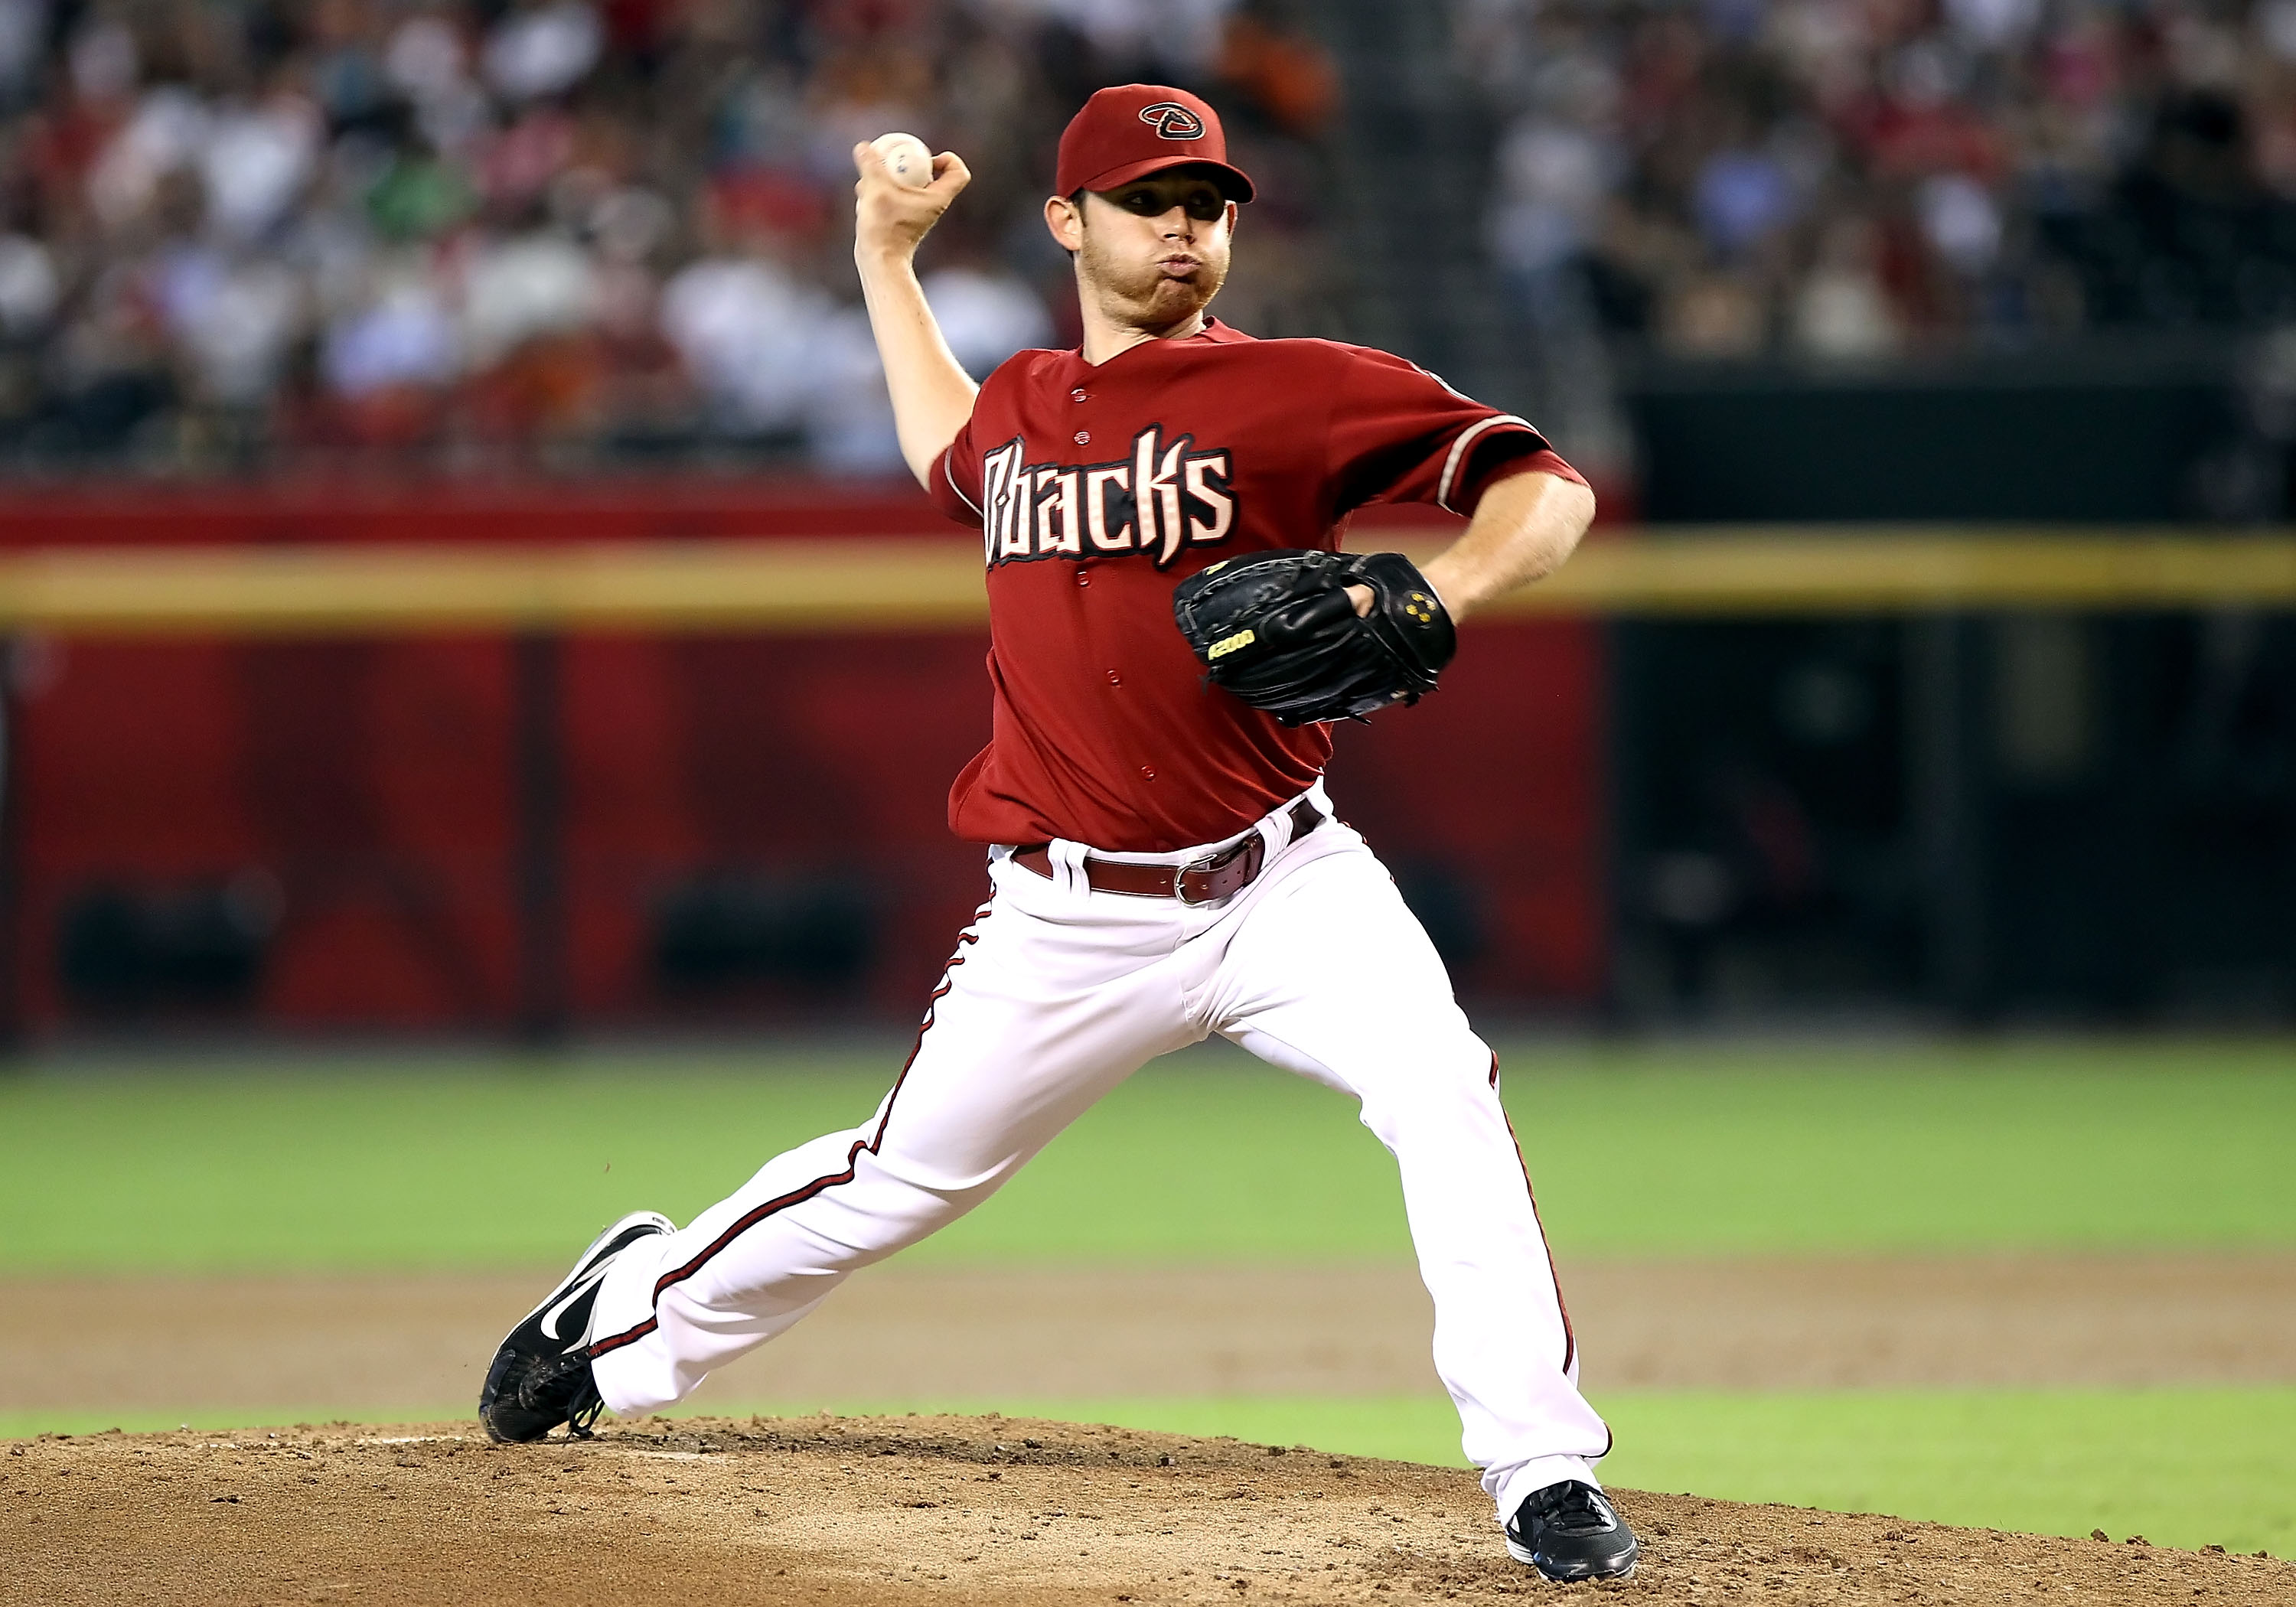 PHOENIX - SEPTEMBER 06:  Starting pitcher Ian Kennedy #31 of the Arizona Diamondbacks pitches against the San Francisco Giants during the Major League Baseball game at Chase Field on September 6, 2010 in Phoenix, Arizona.  (Photo by Christian Petersen/Get